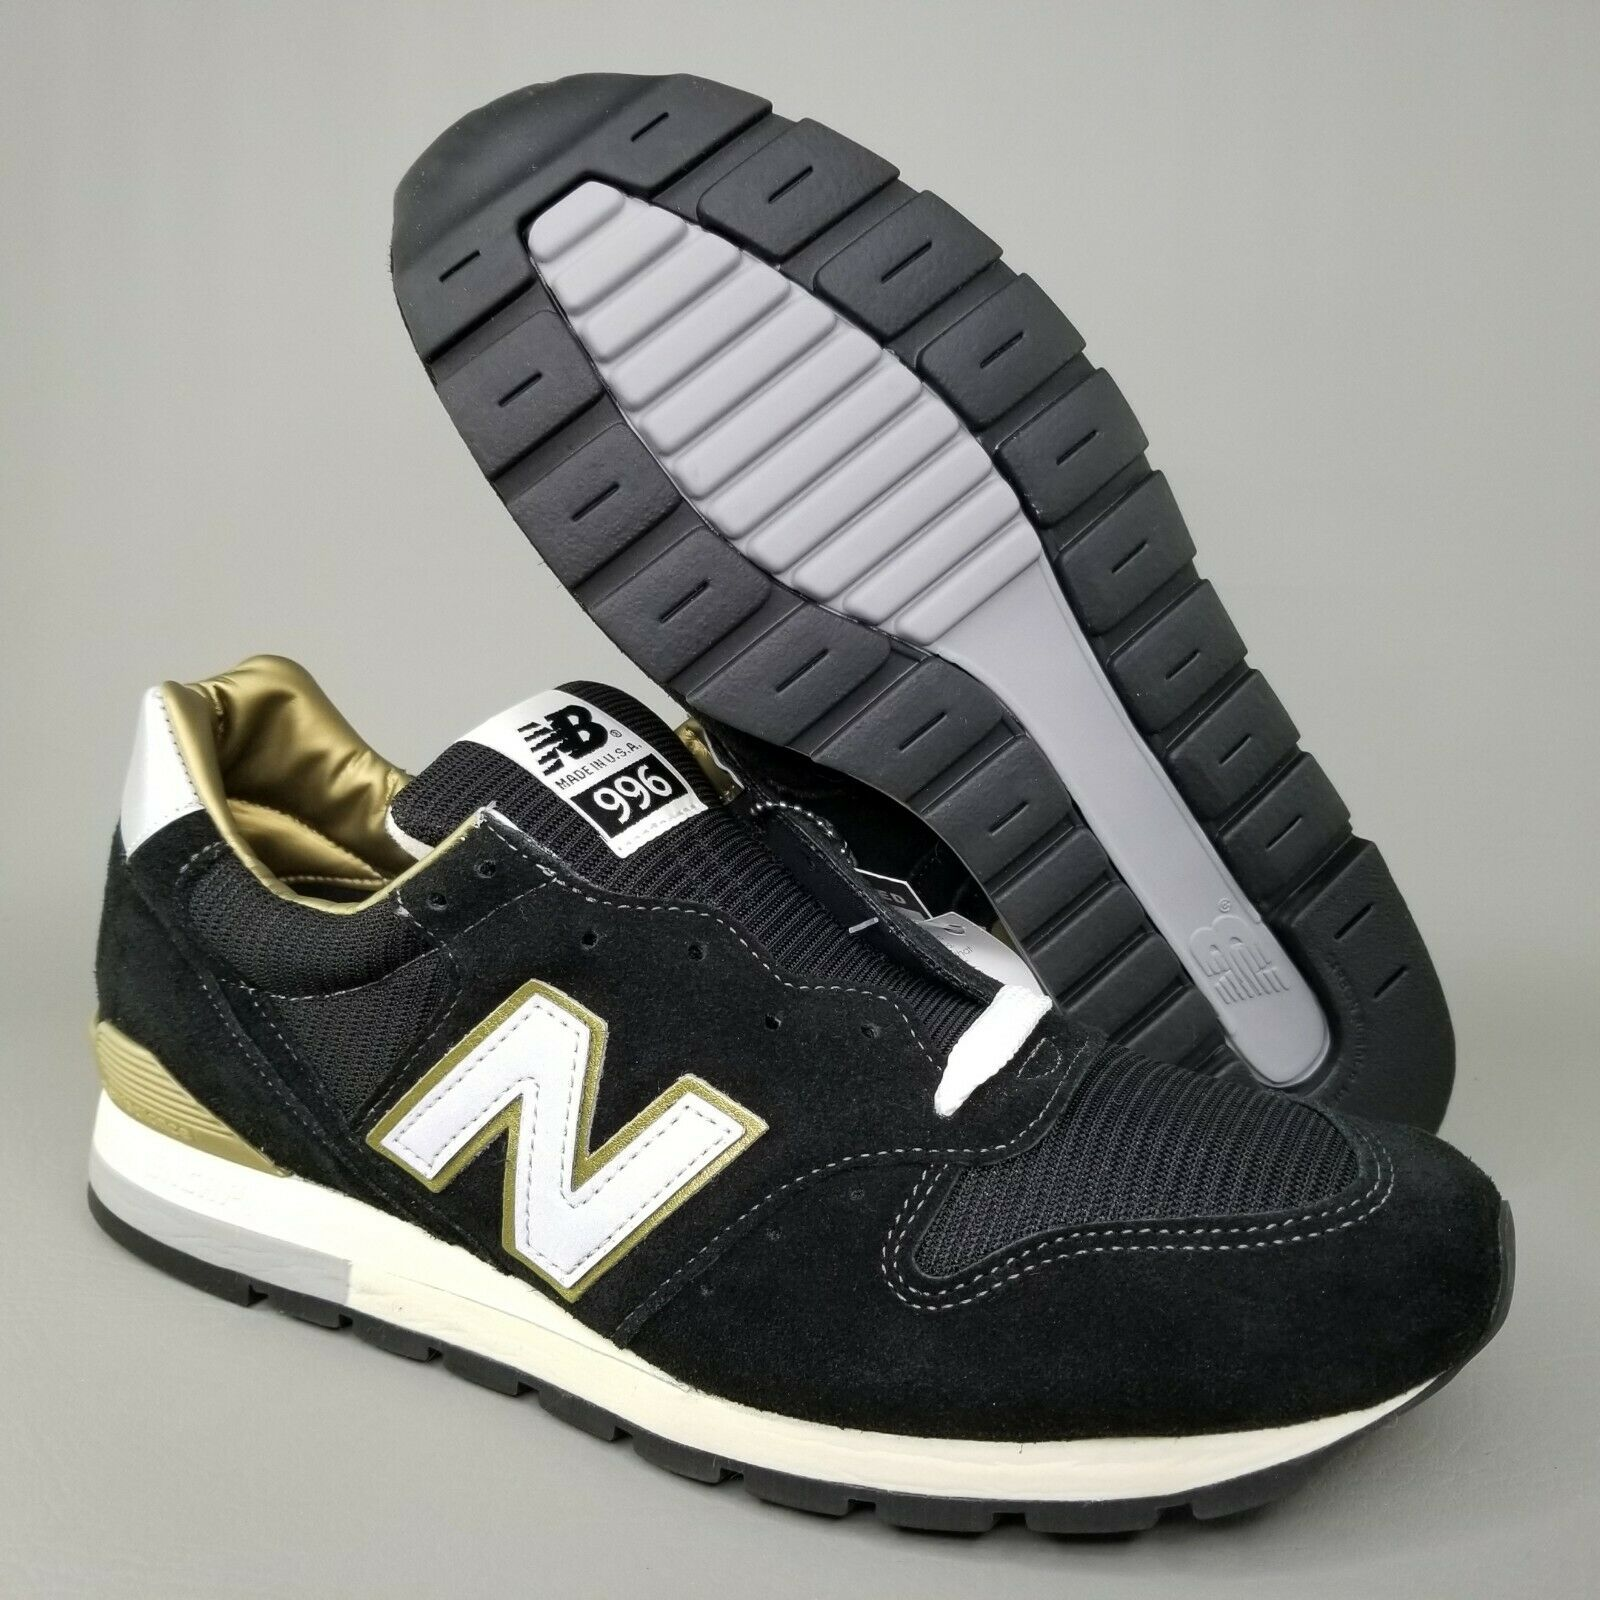 New Balance 996 Limited Suede Running shoes SZ 11.5 Mens Black gold Made in USA